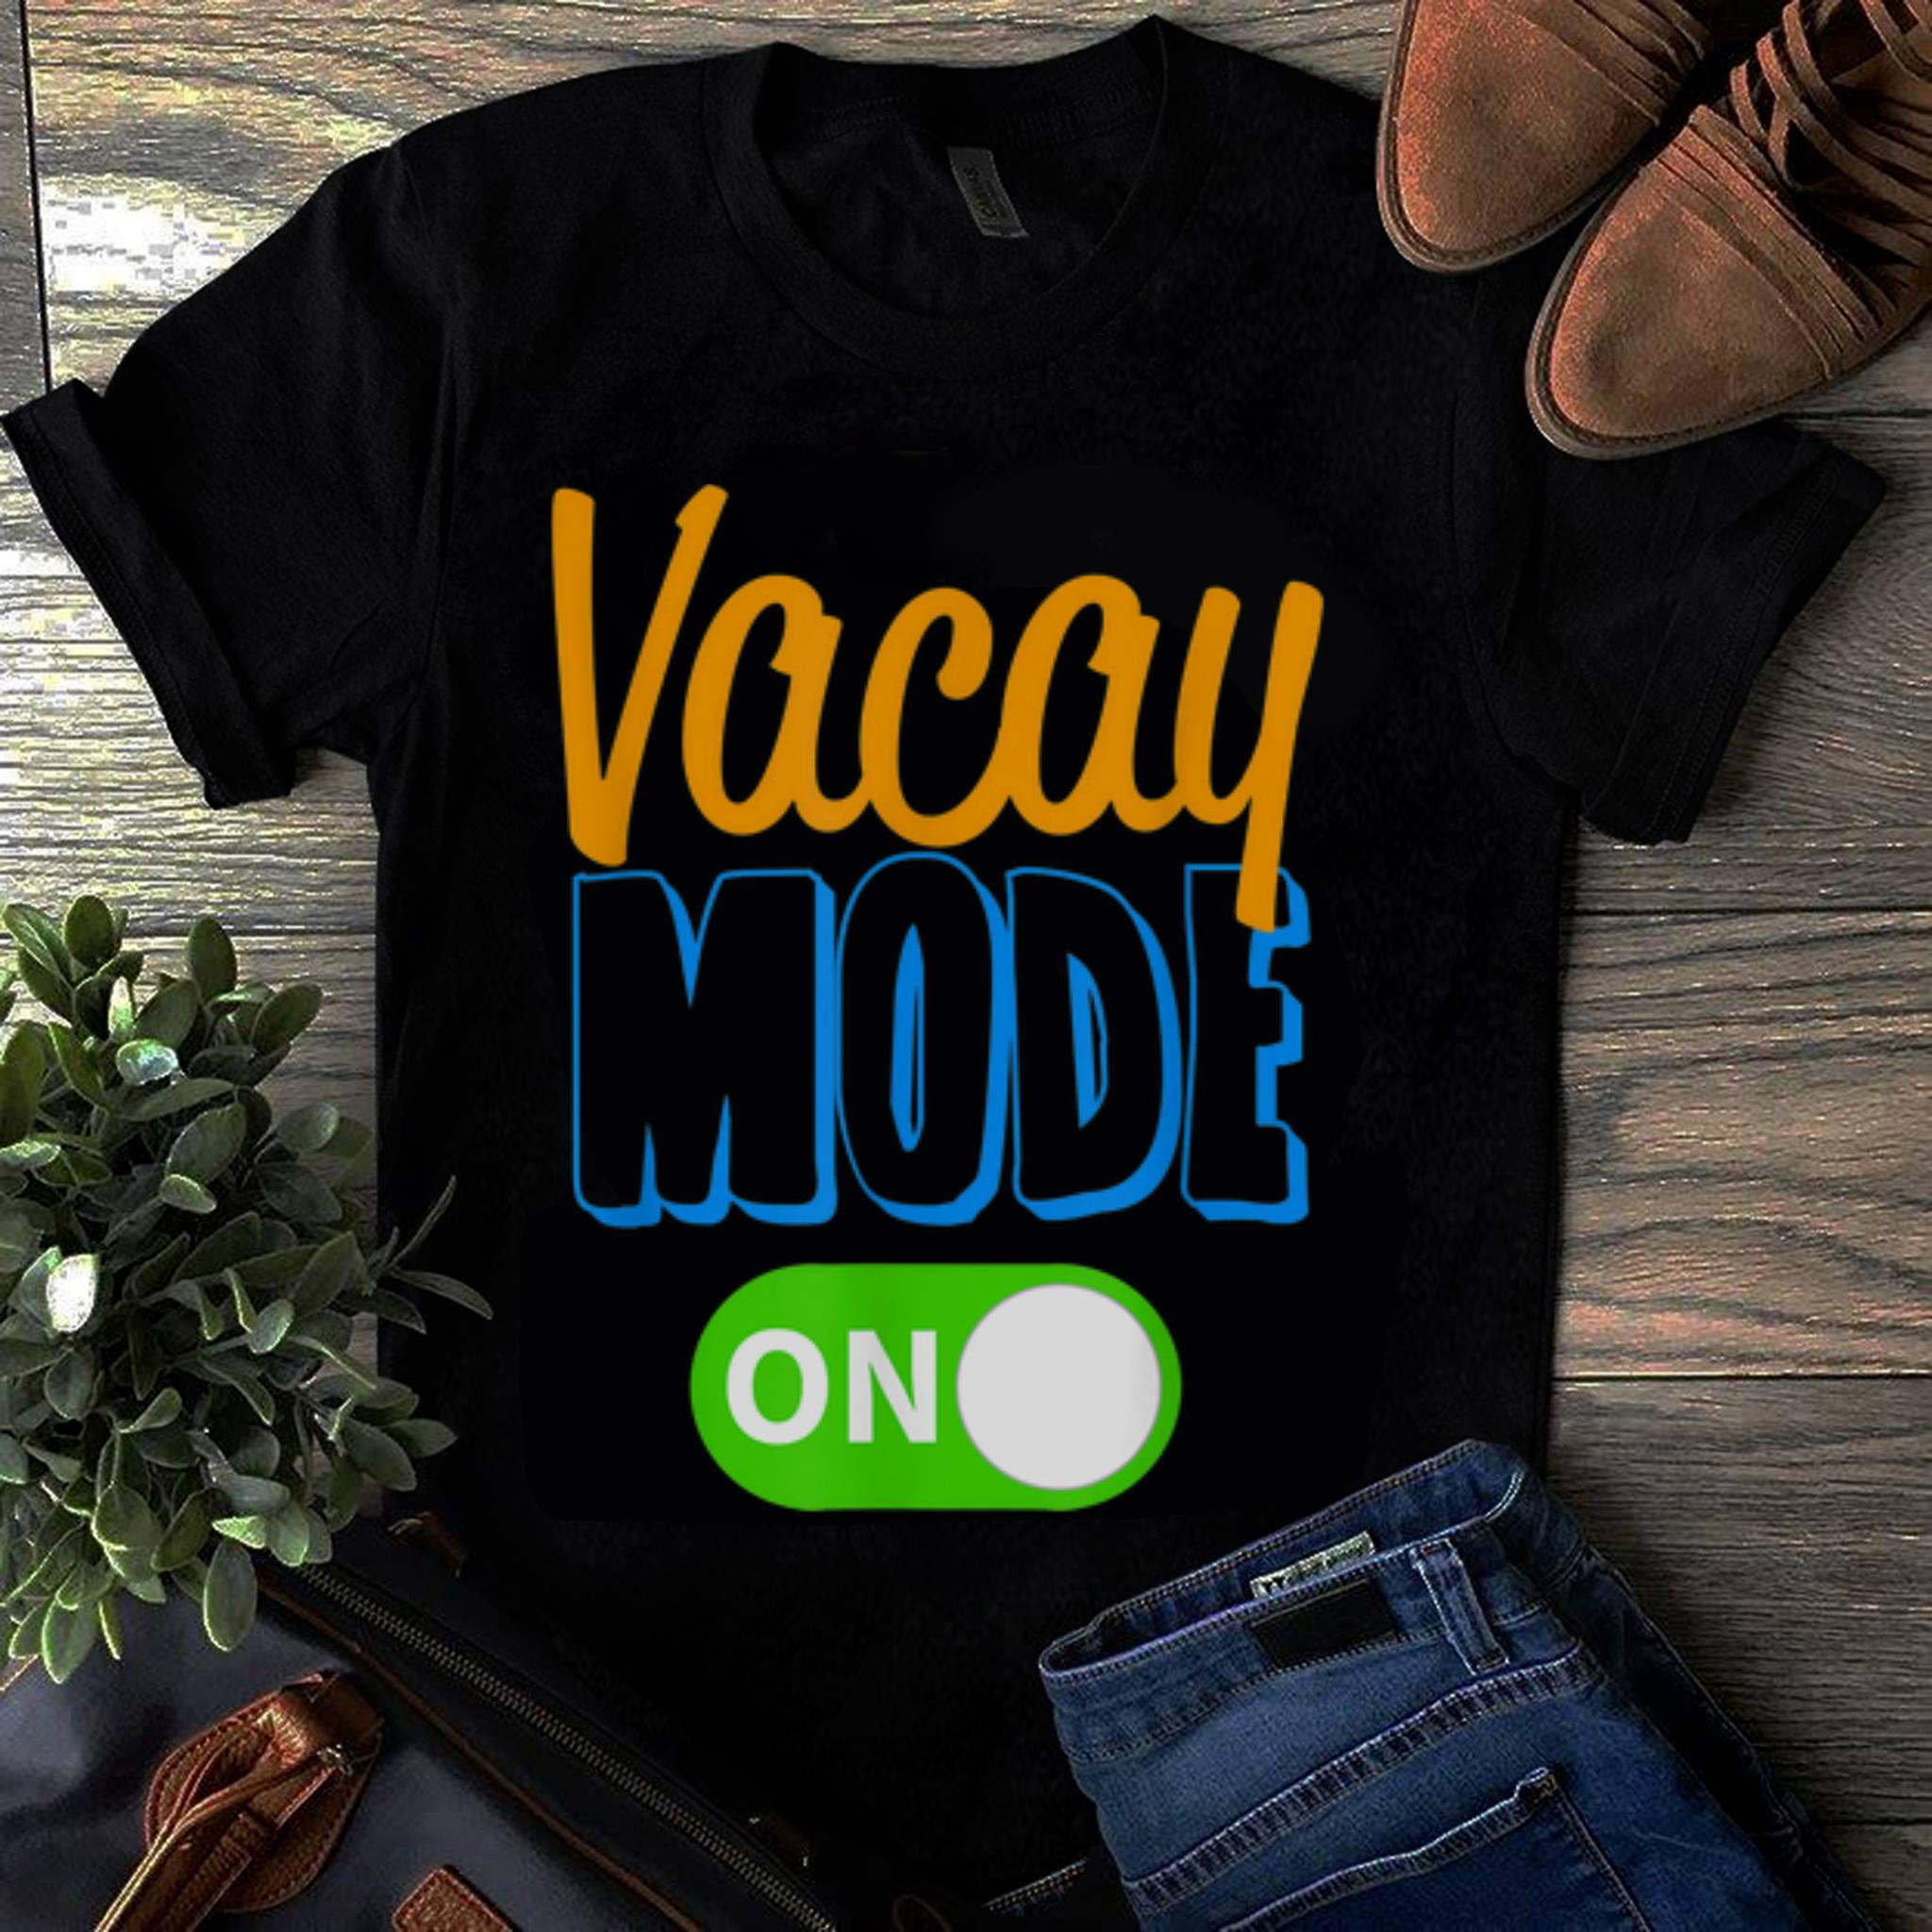 Awesome Vacay Mode On Family Vacation Guy tee